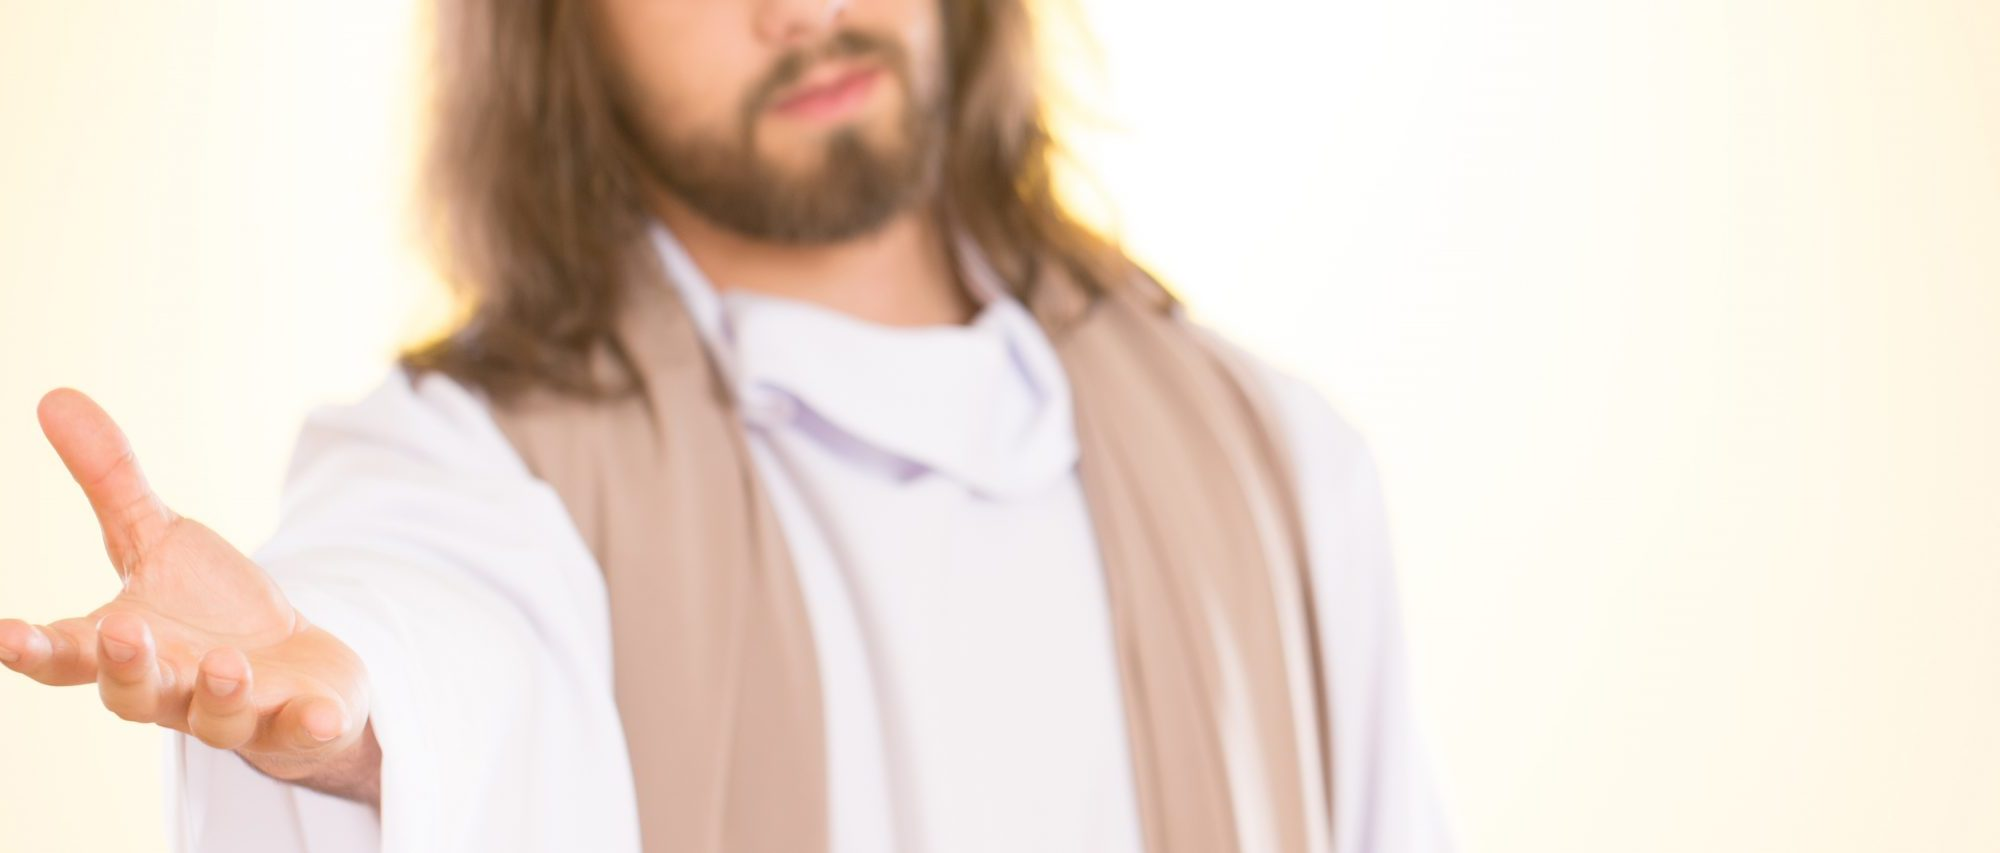 Jesus reaching out his hand